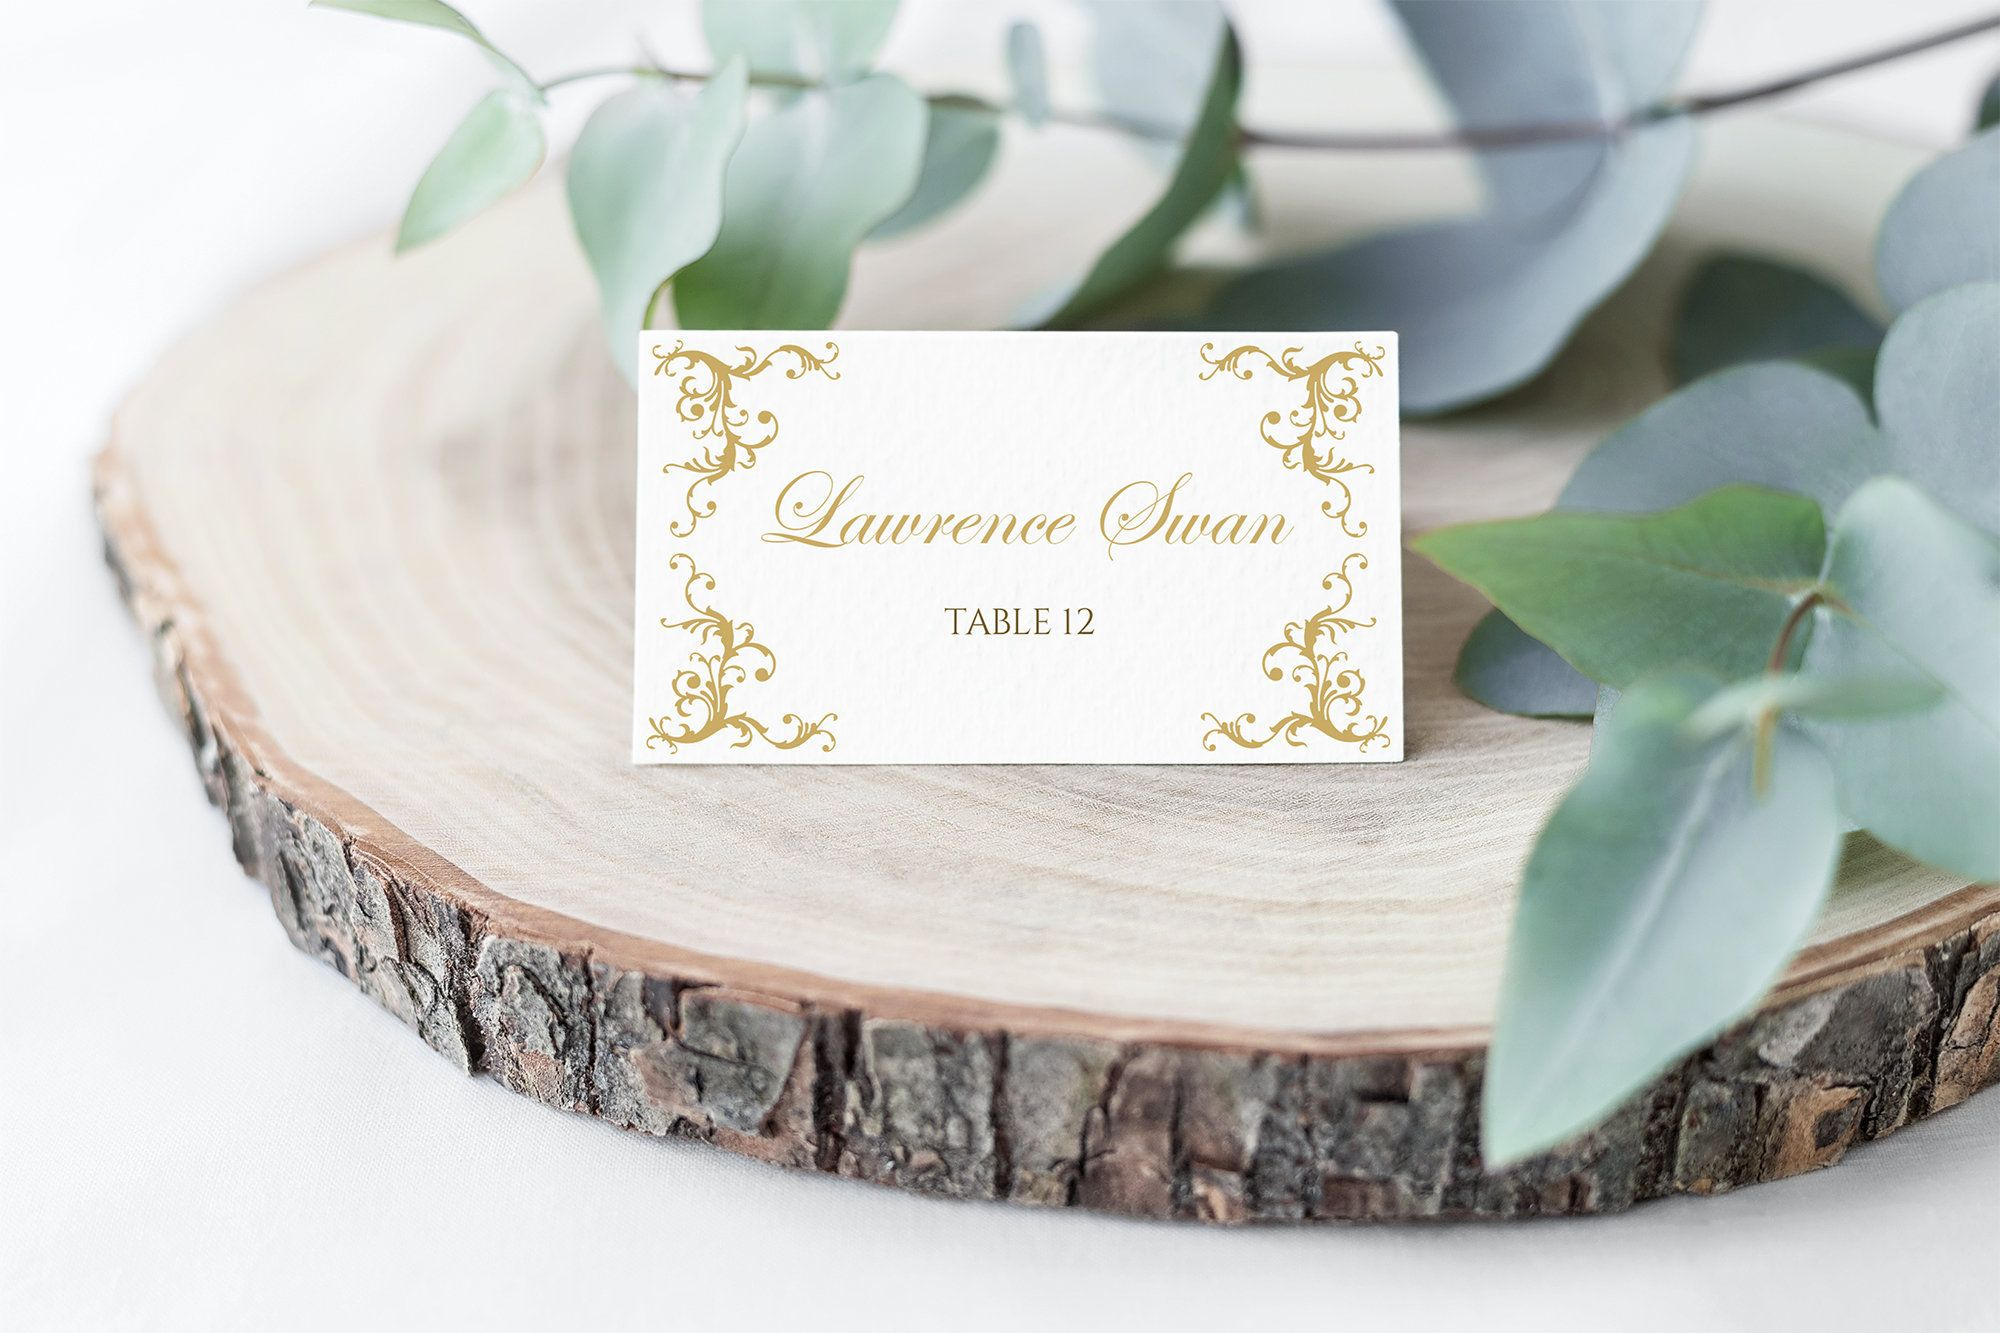 Pin on Place Cards & Table Number Cards